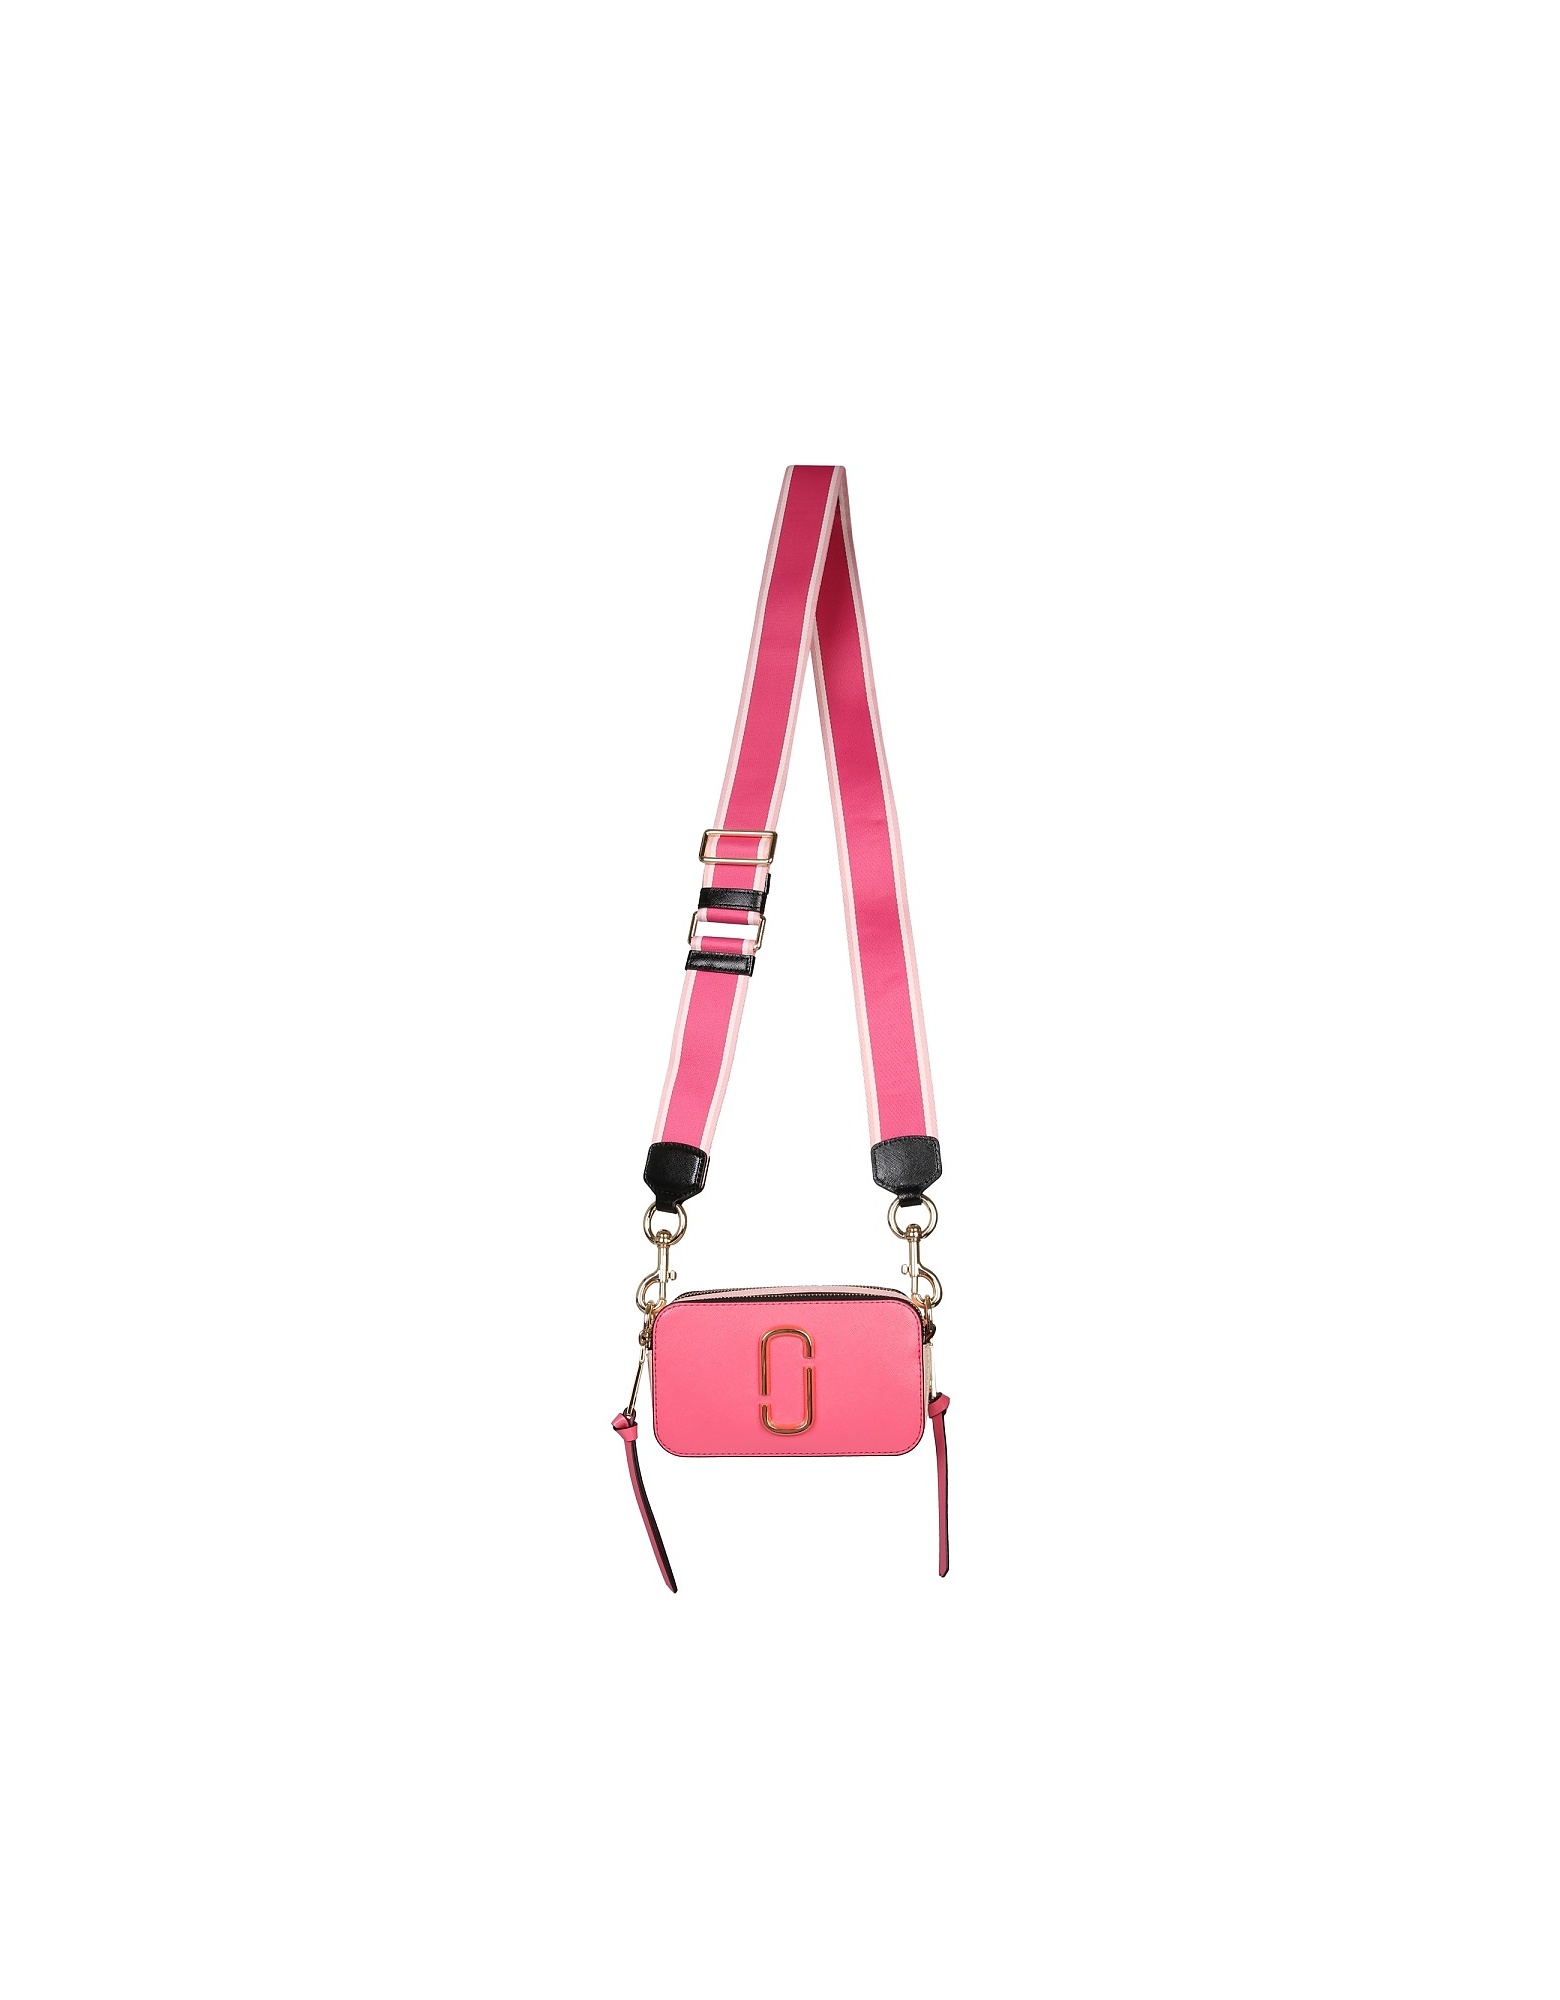 Adjustable and removable oversize shoulder strap in grosgrain with snap hook, double compartment wit